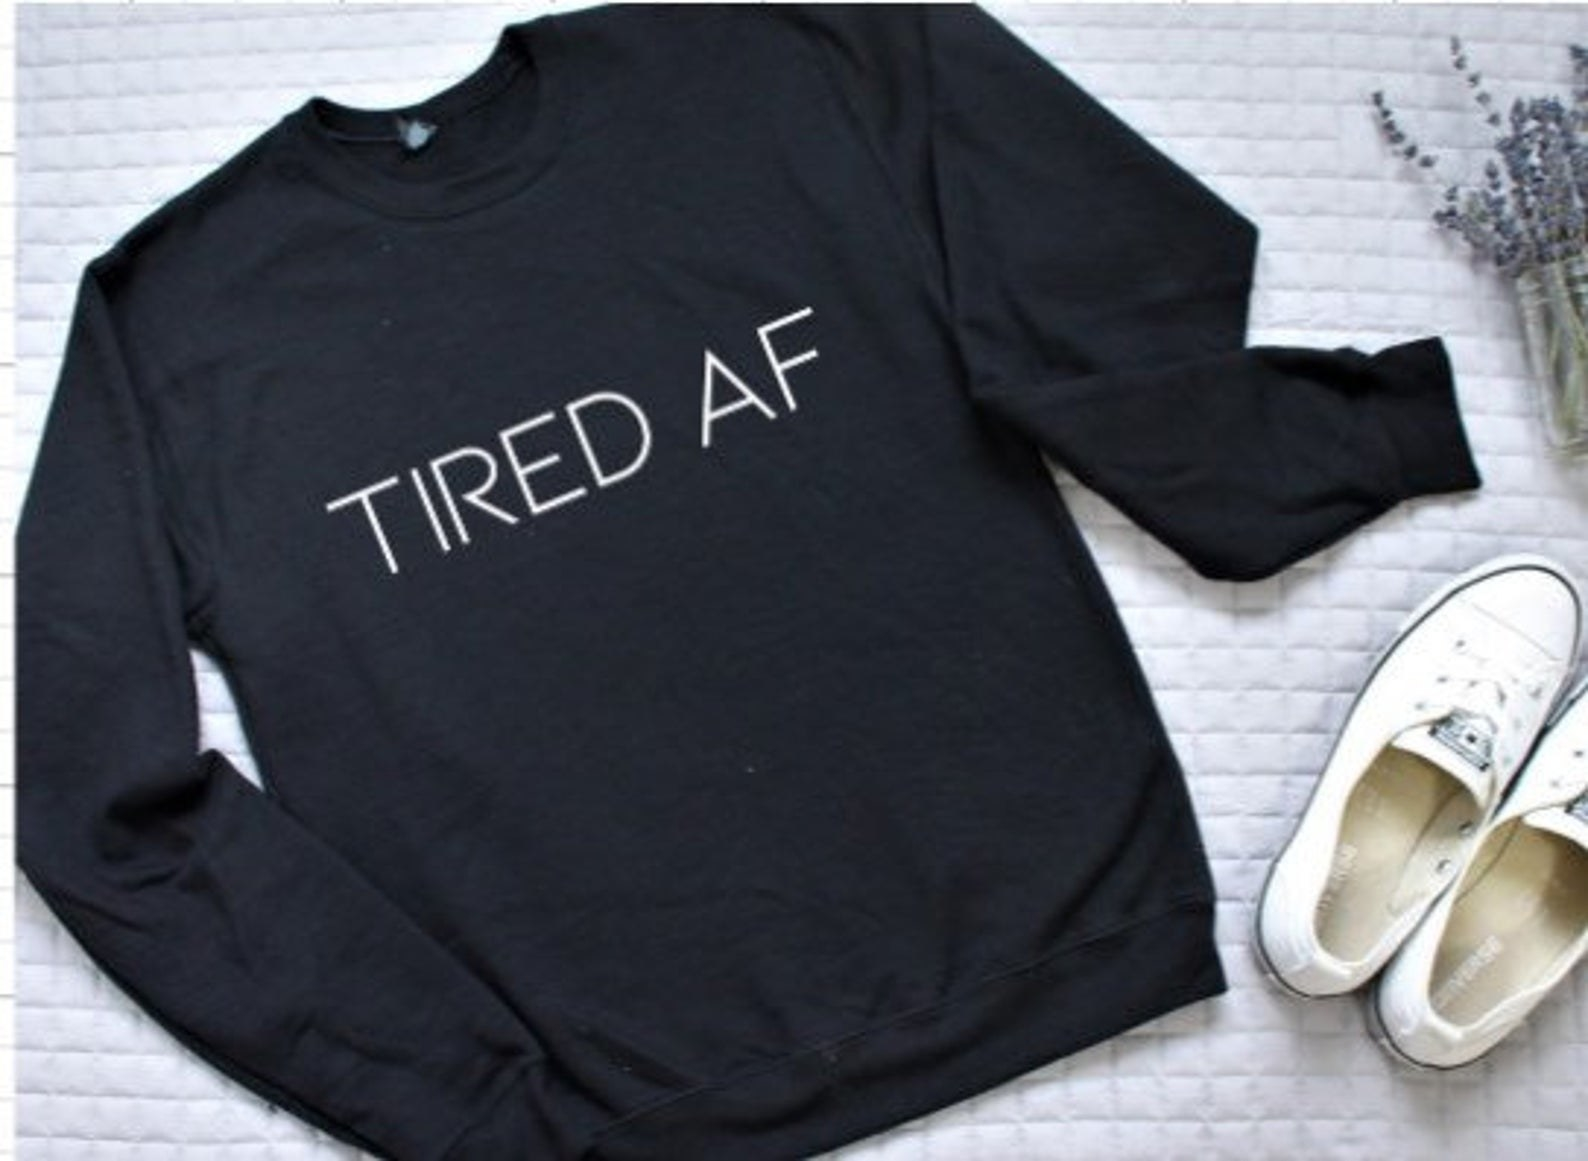 the sweatshirt that says tired AF